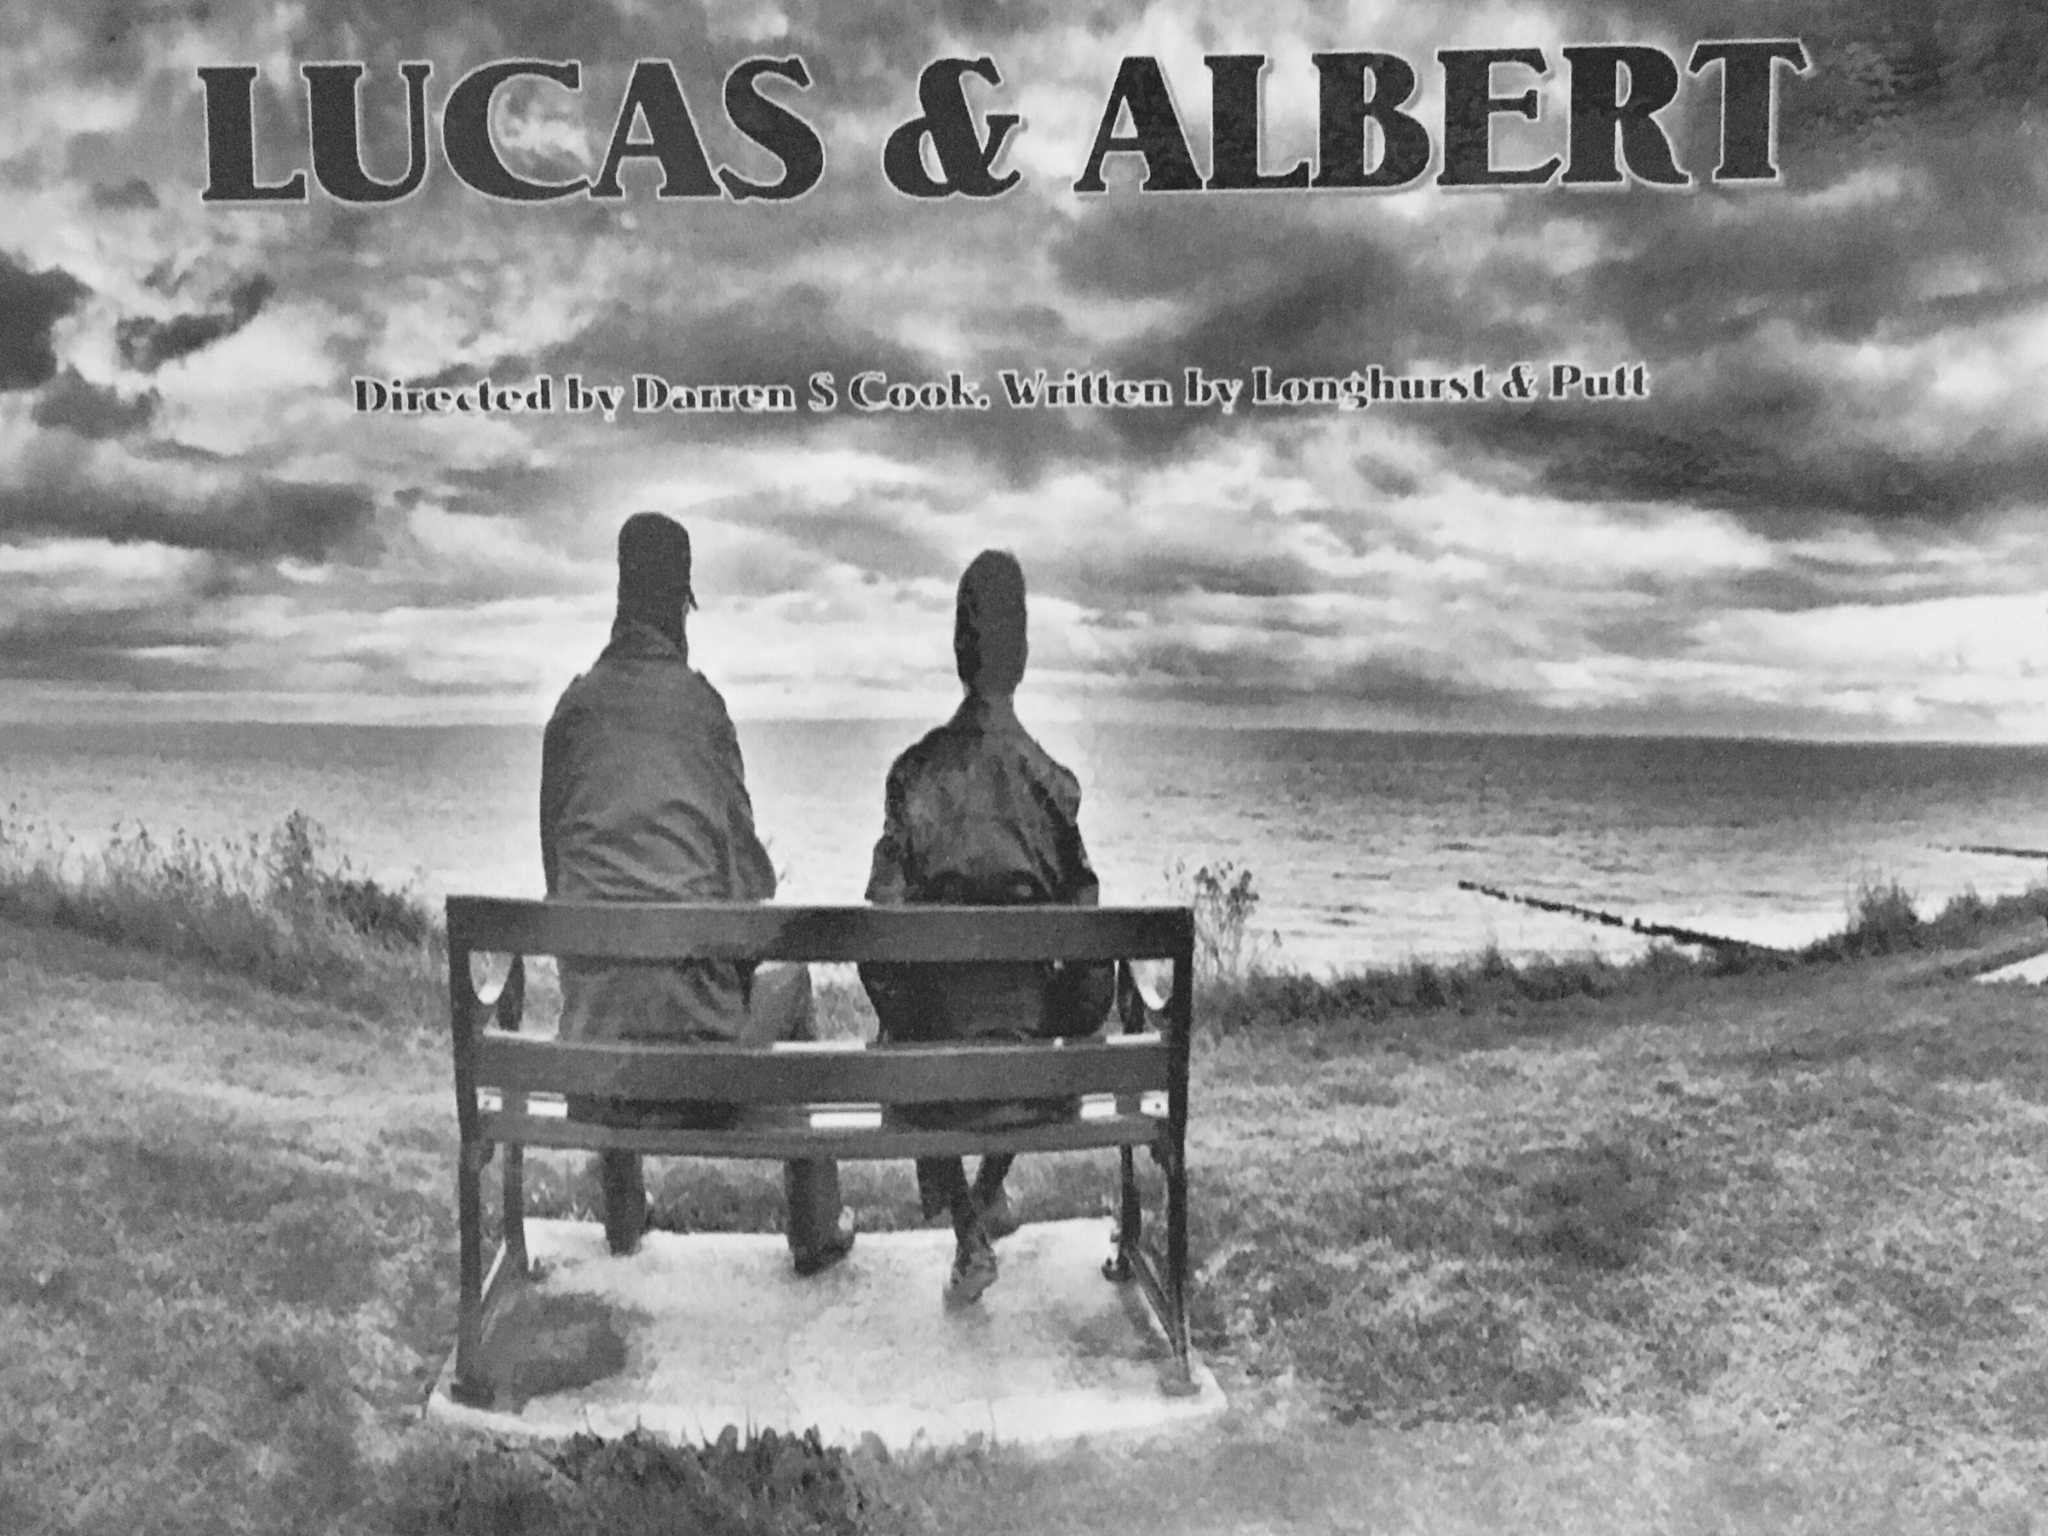 Lucas and Albert is the story of two hitmen